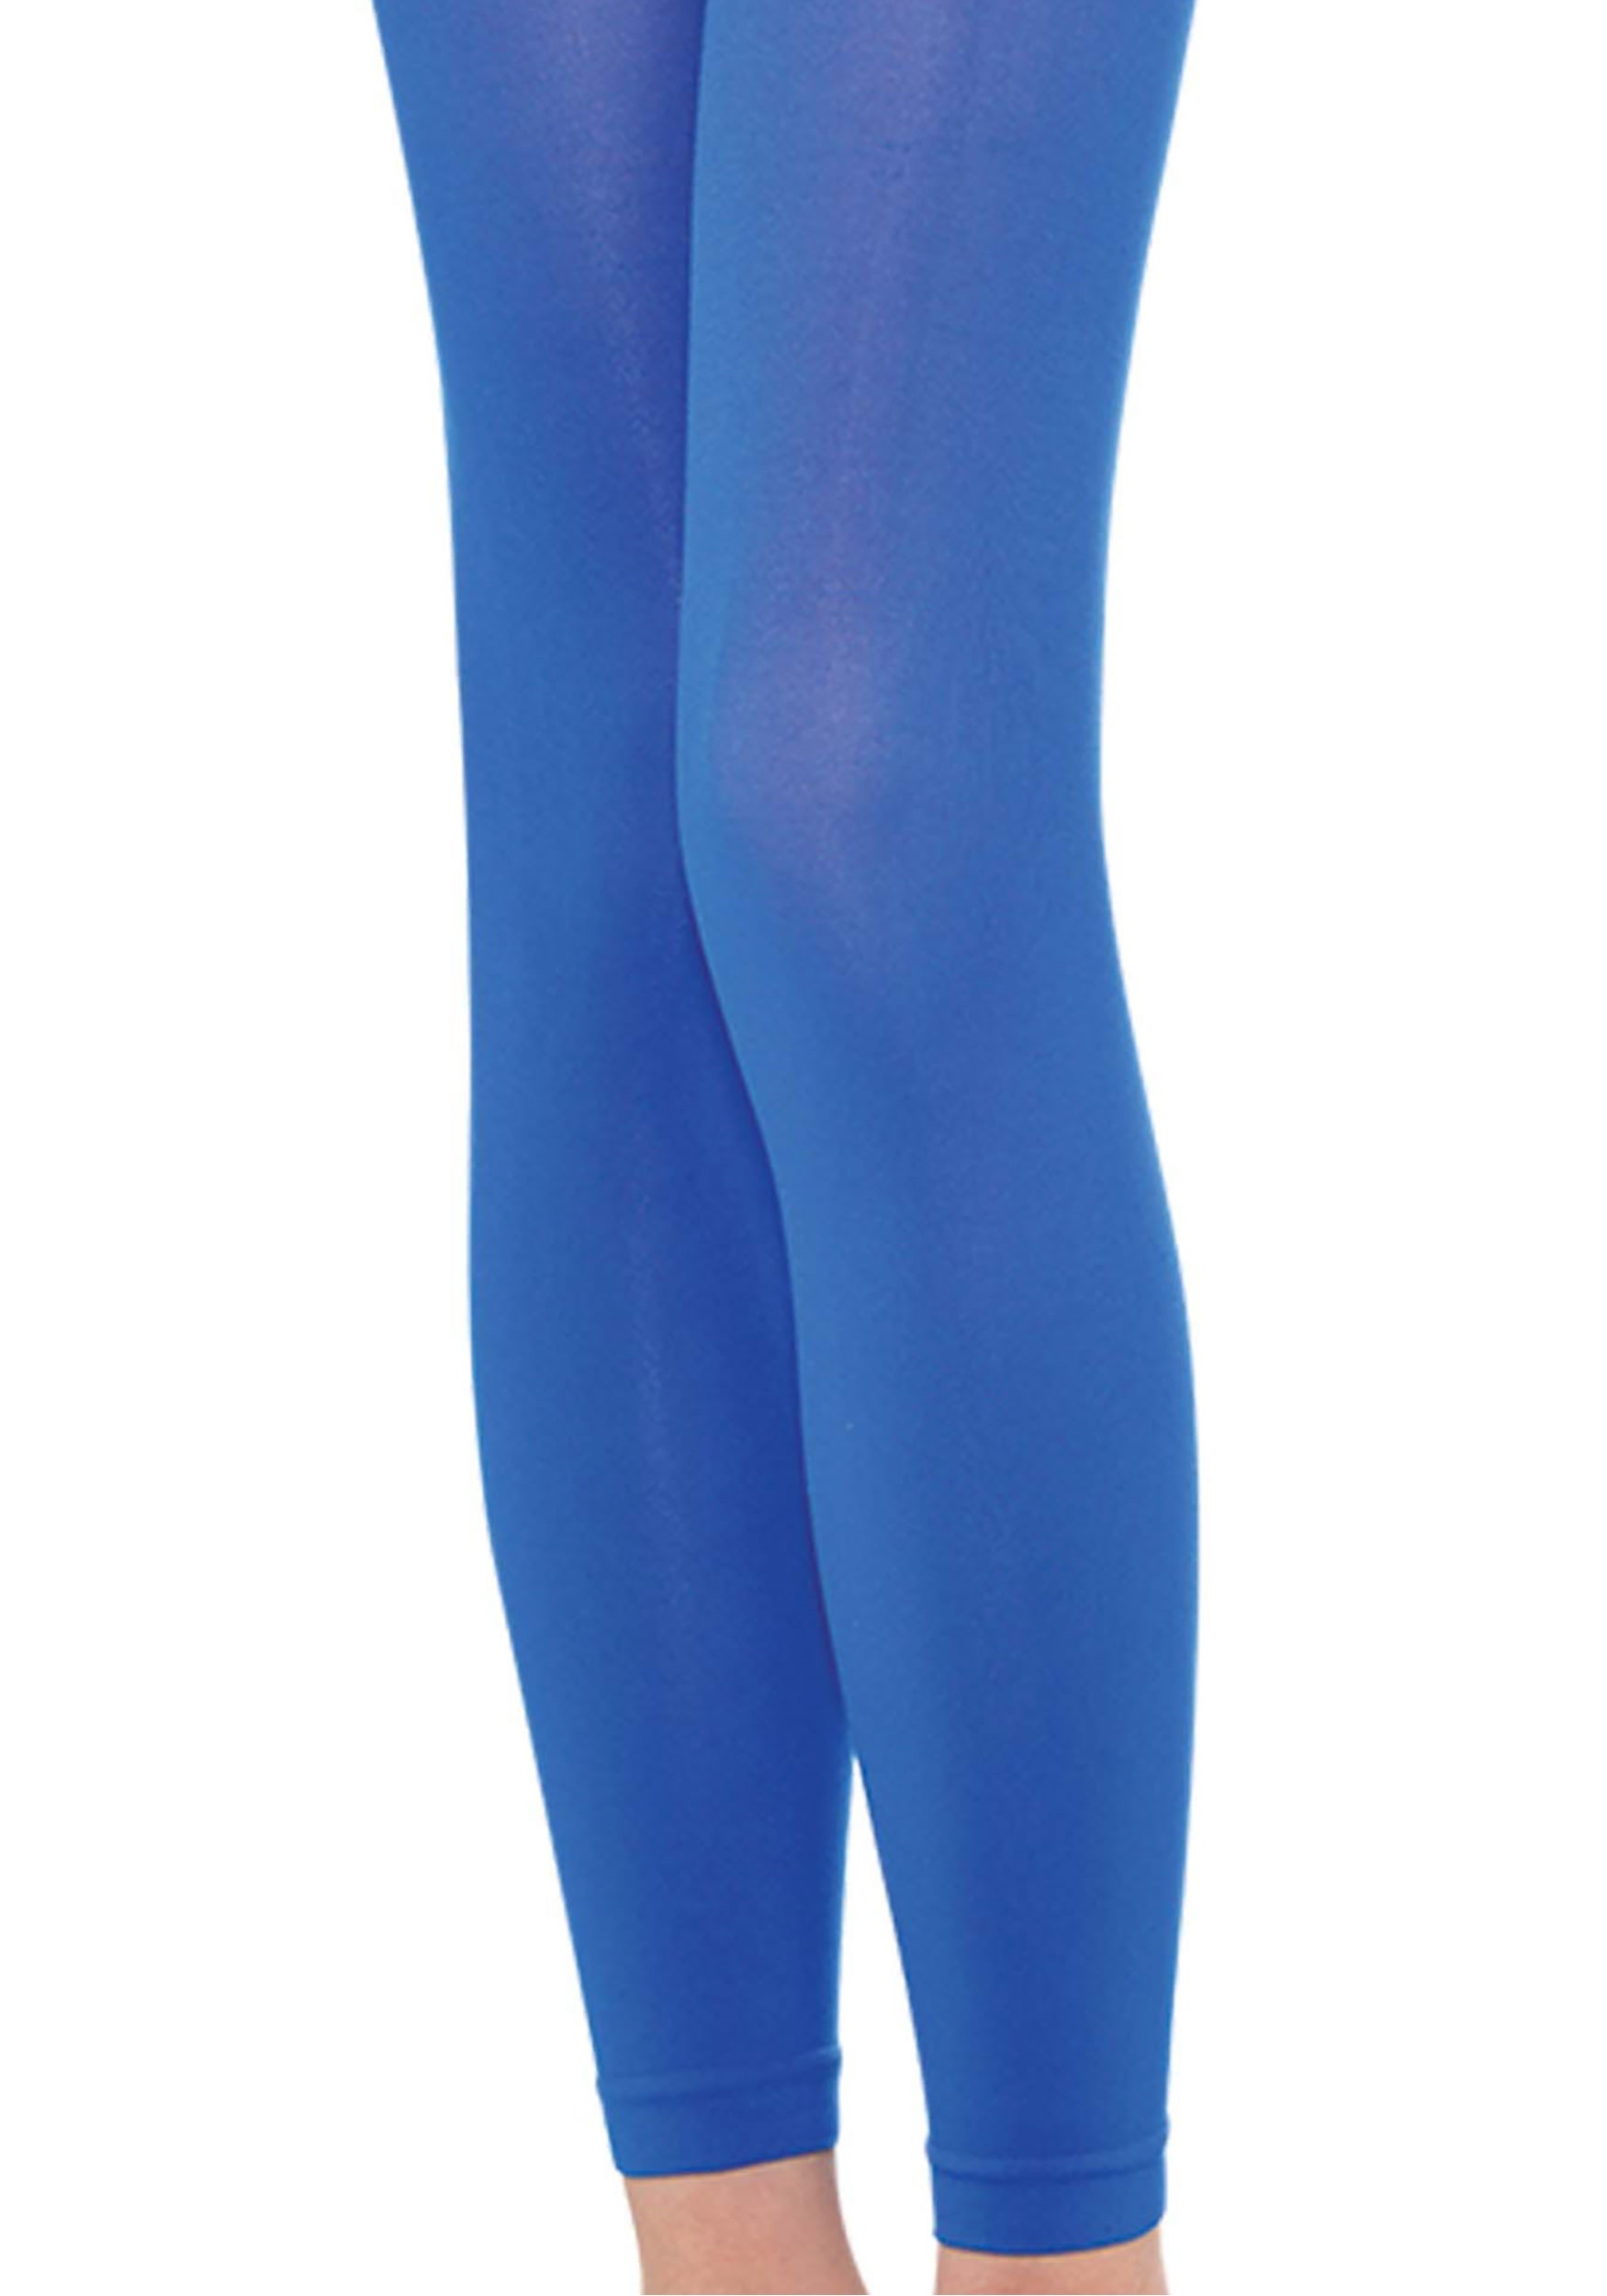 Women's_Blue_Footless_Tights